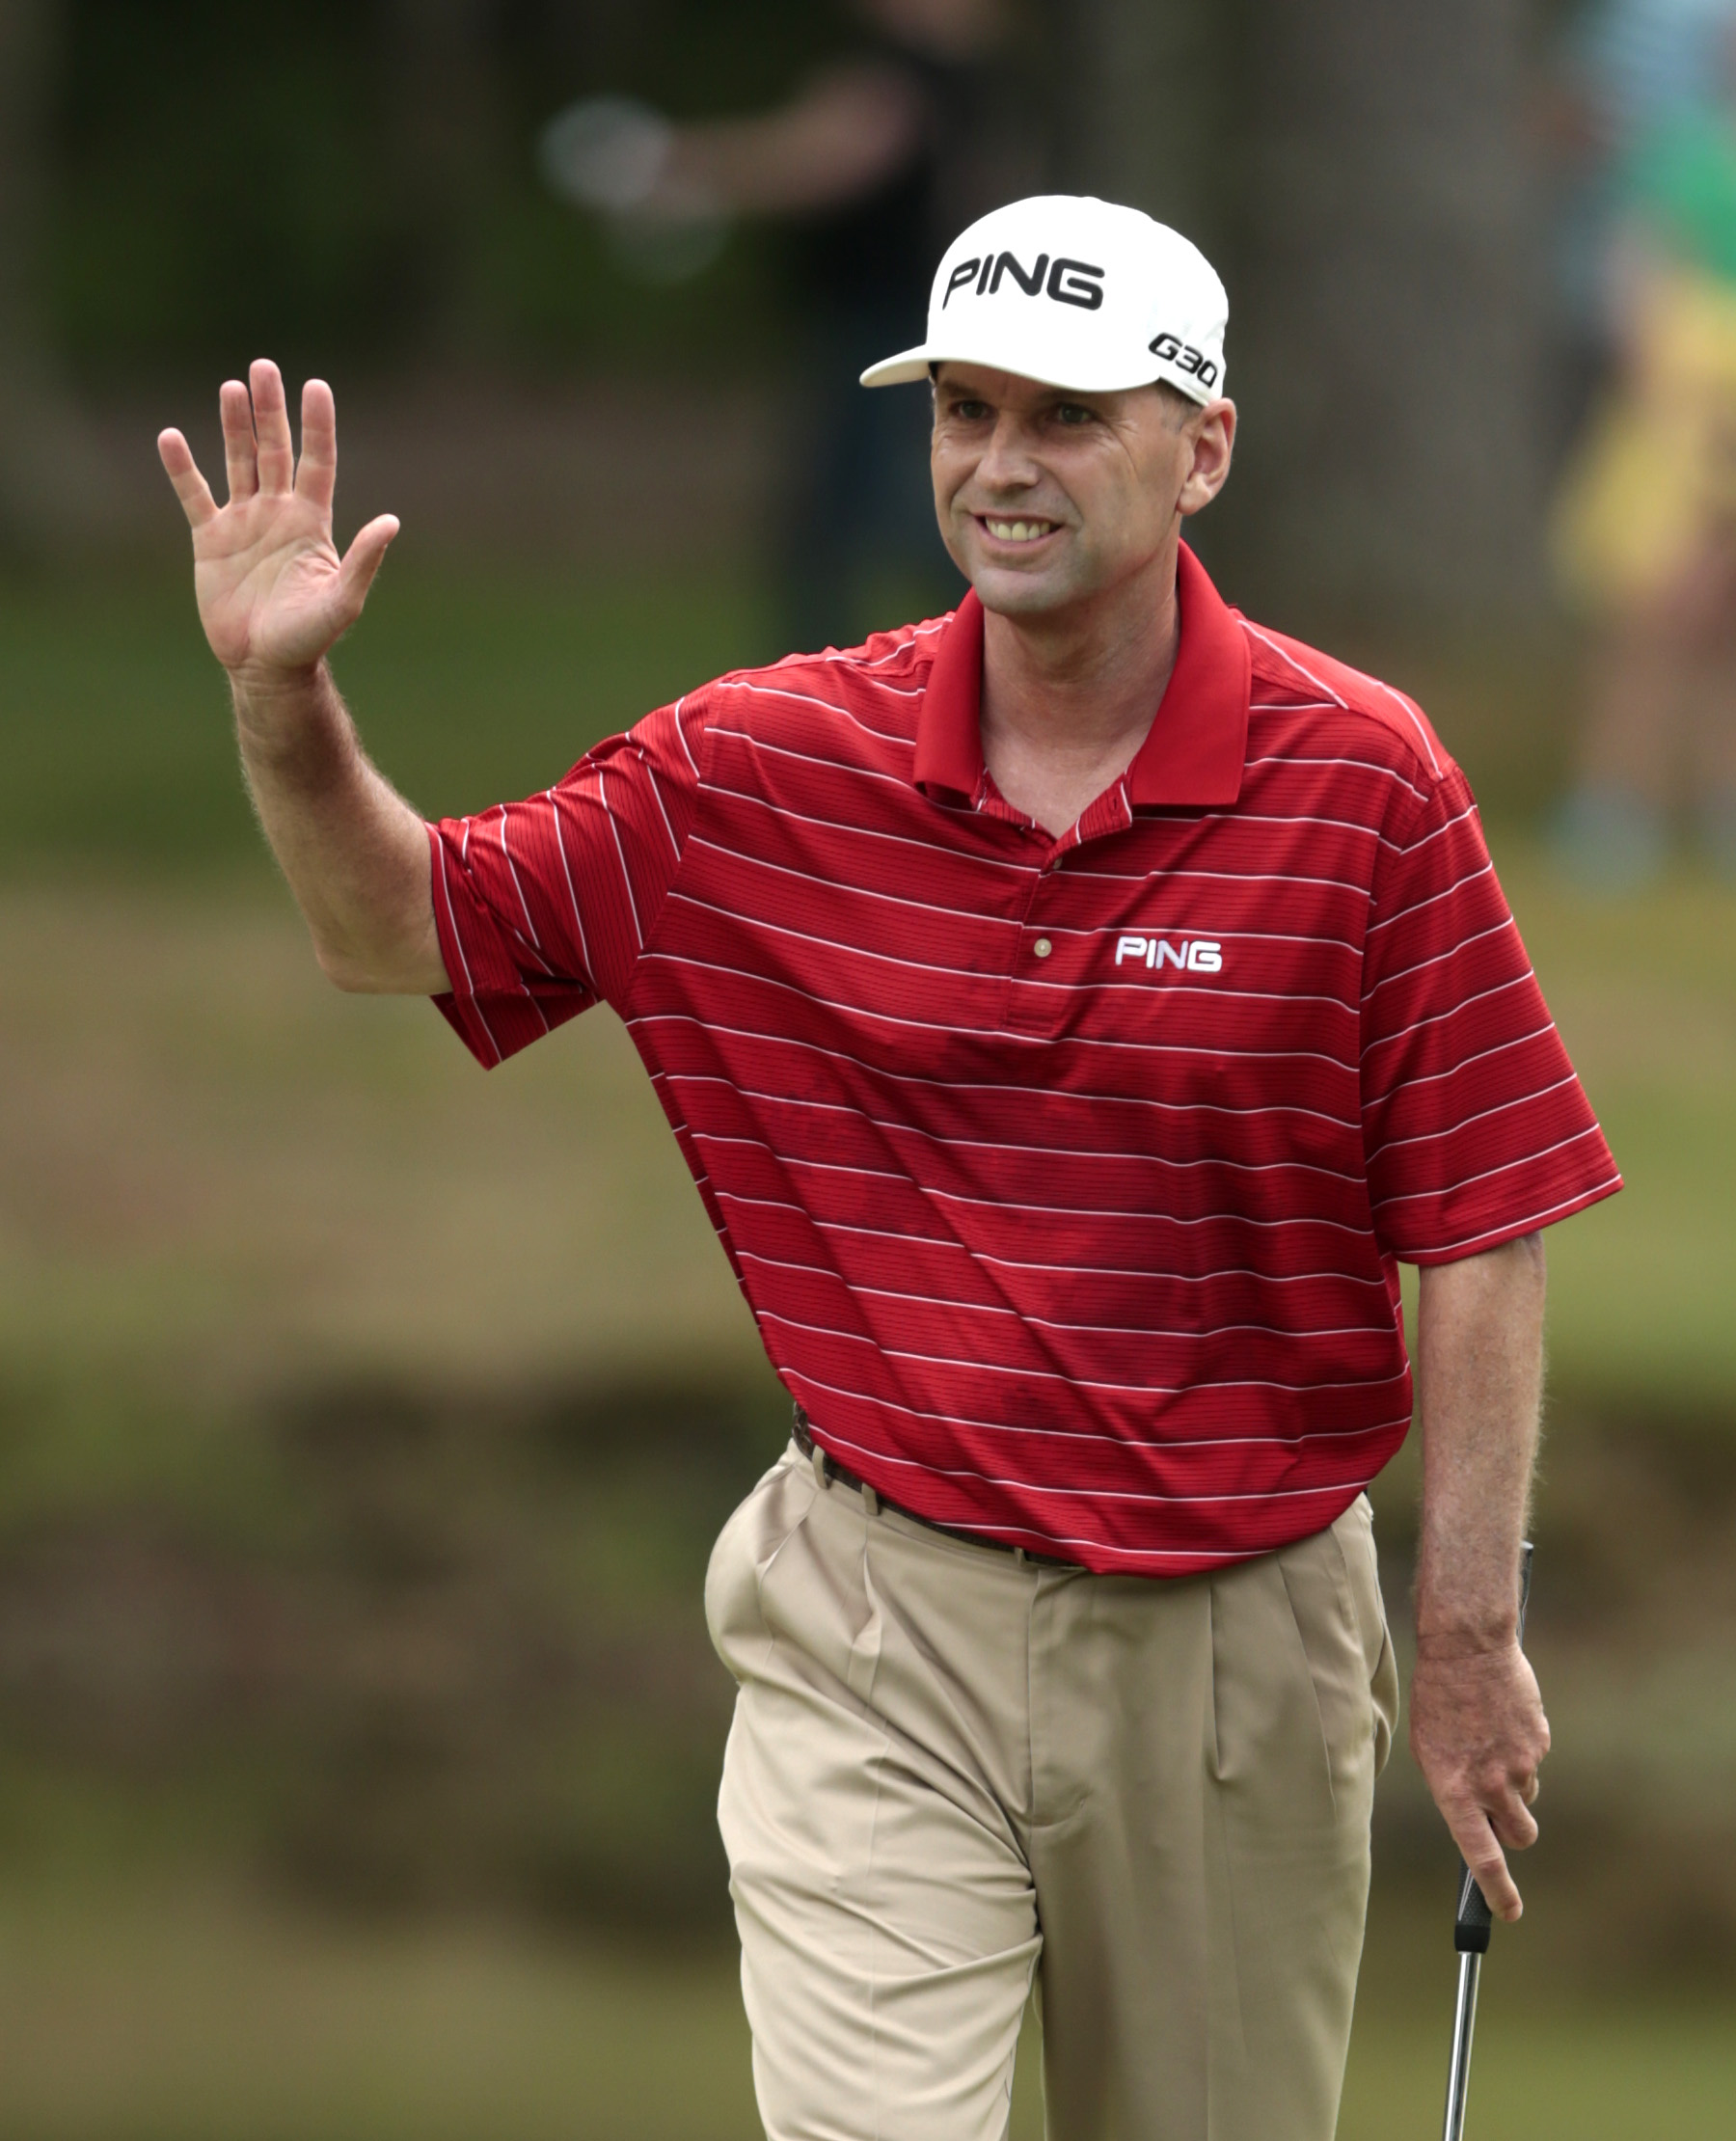 Kevin Sutherland waves to fans after making a birdie putt on the ninth hole during the Regions Tradition Champions Tour golf tournament at Shoal Creek Country Club, Saturday, May 16, 2015, in Birmingham, Ala. (AP Photo/Butch Dill)